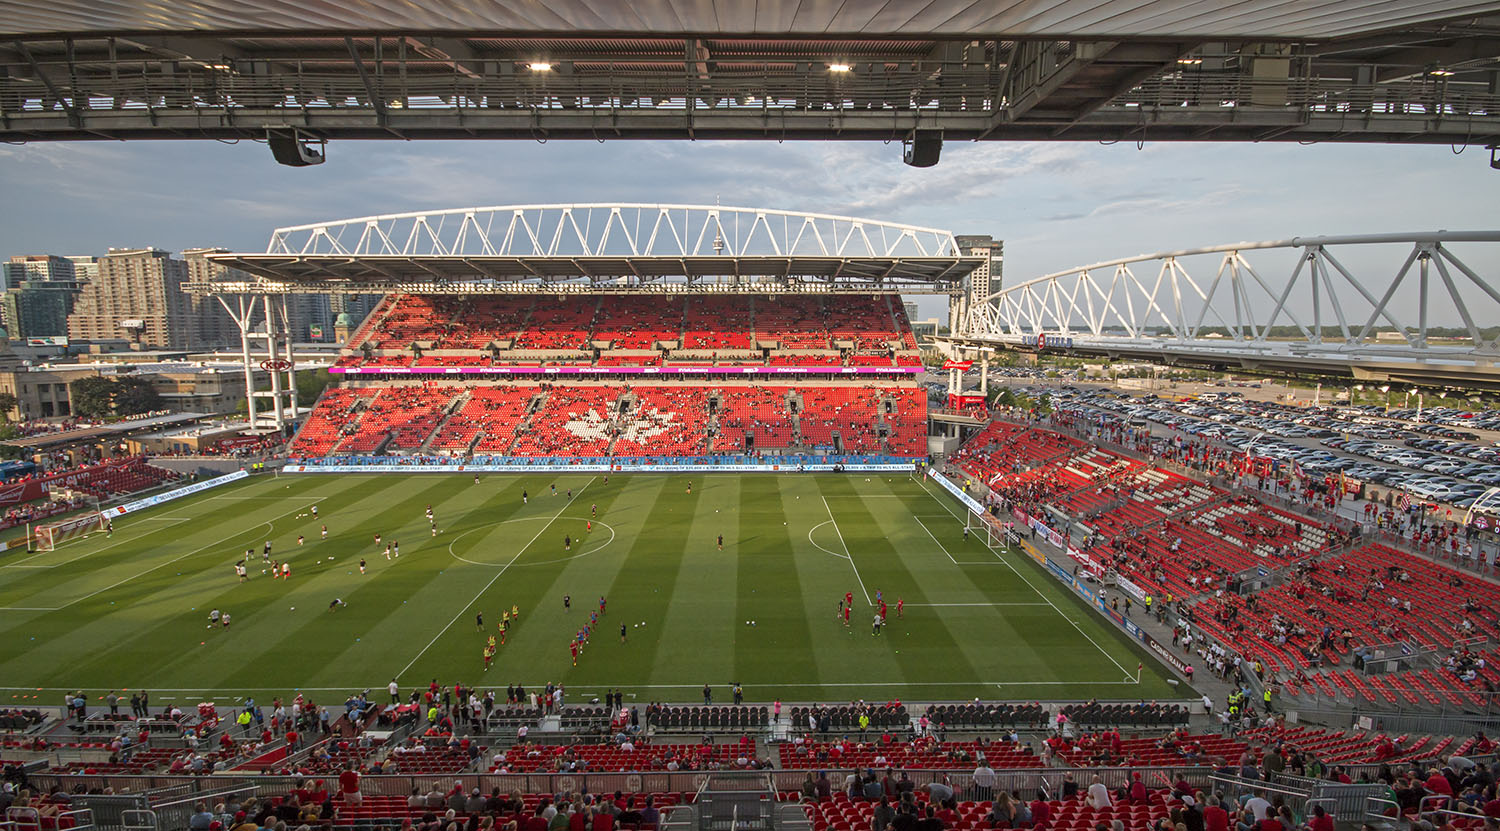 Toronto FC trainning at BMO Field in Toronto, Canada before a 2017 Major League Soccer match. Image by Dennis Marciniak of denMAR Media.